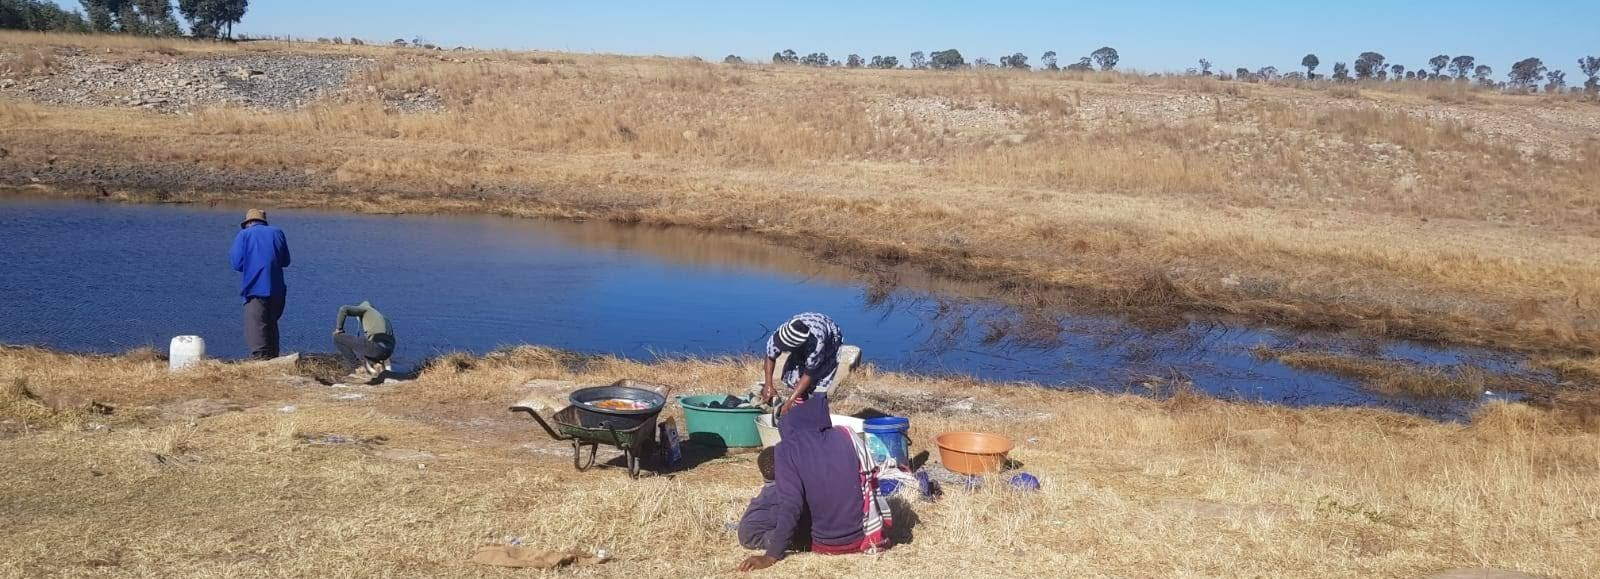 Men collect water at a pond while a lady washes her clothes